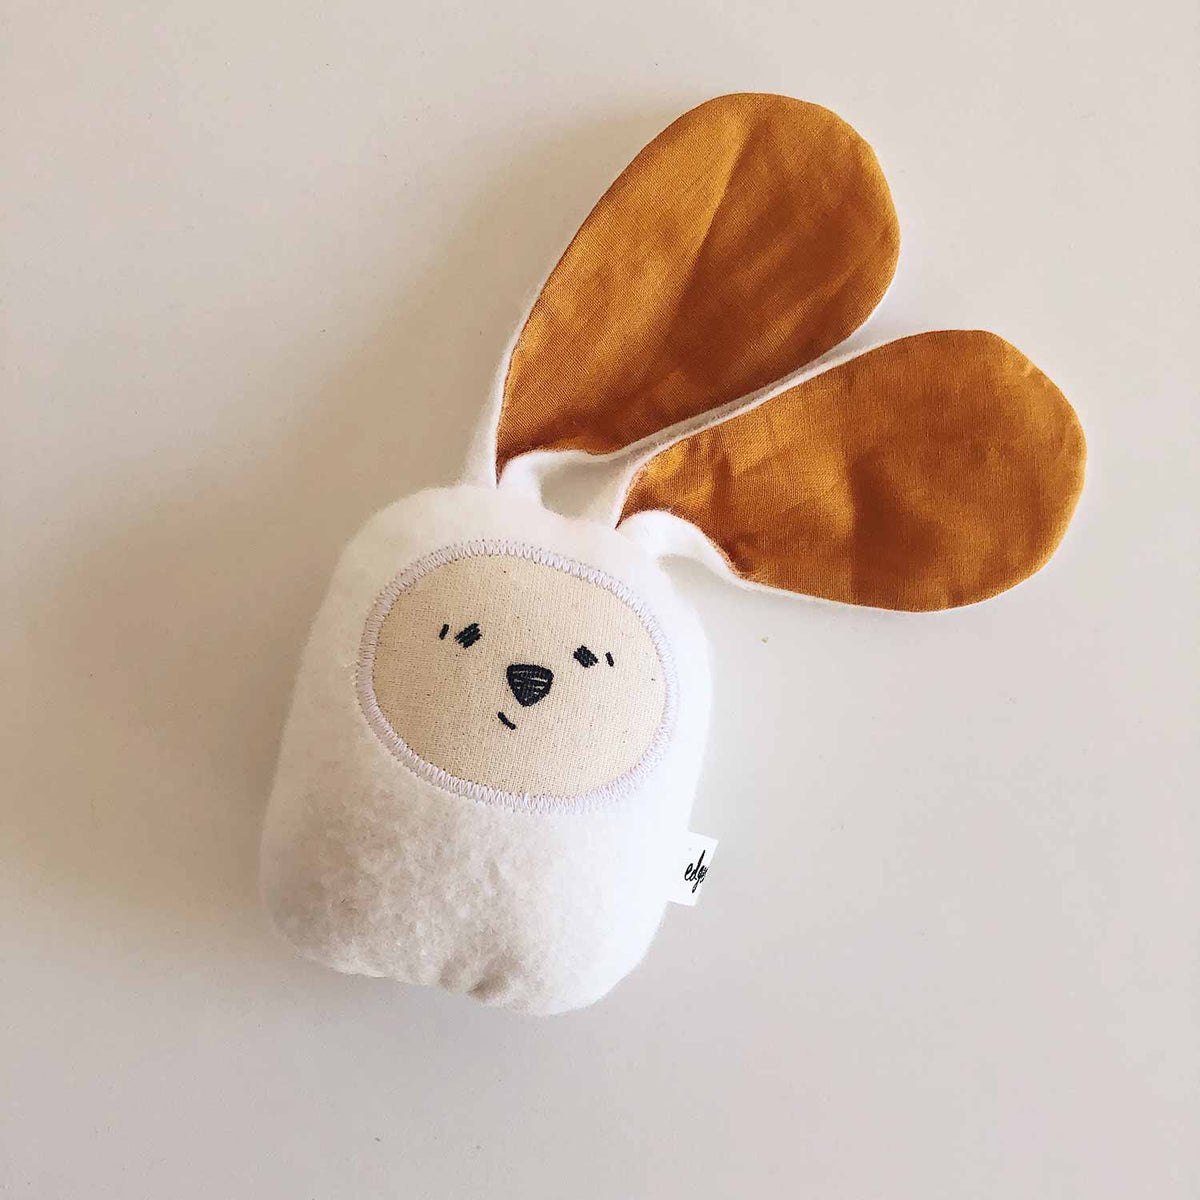 Unisex Hygge Bunny Soft Toy